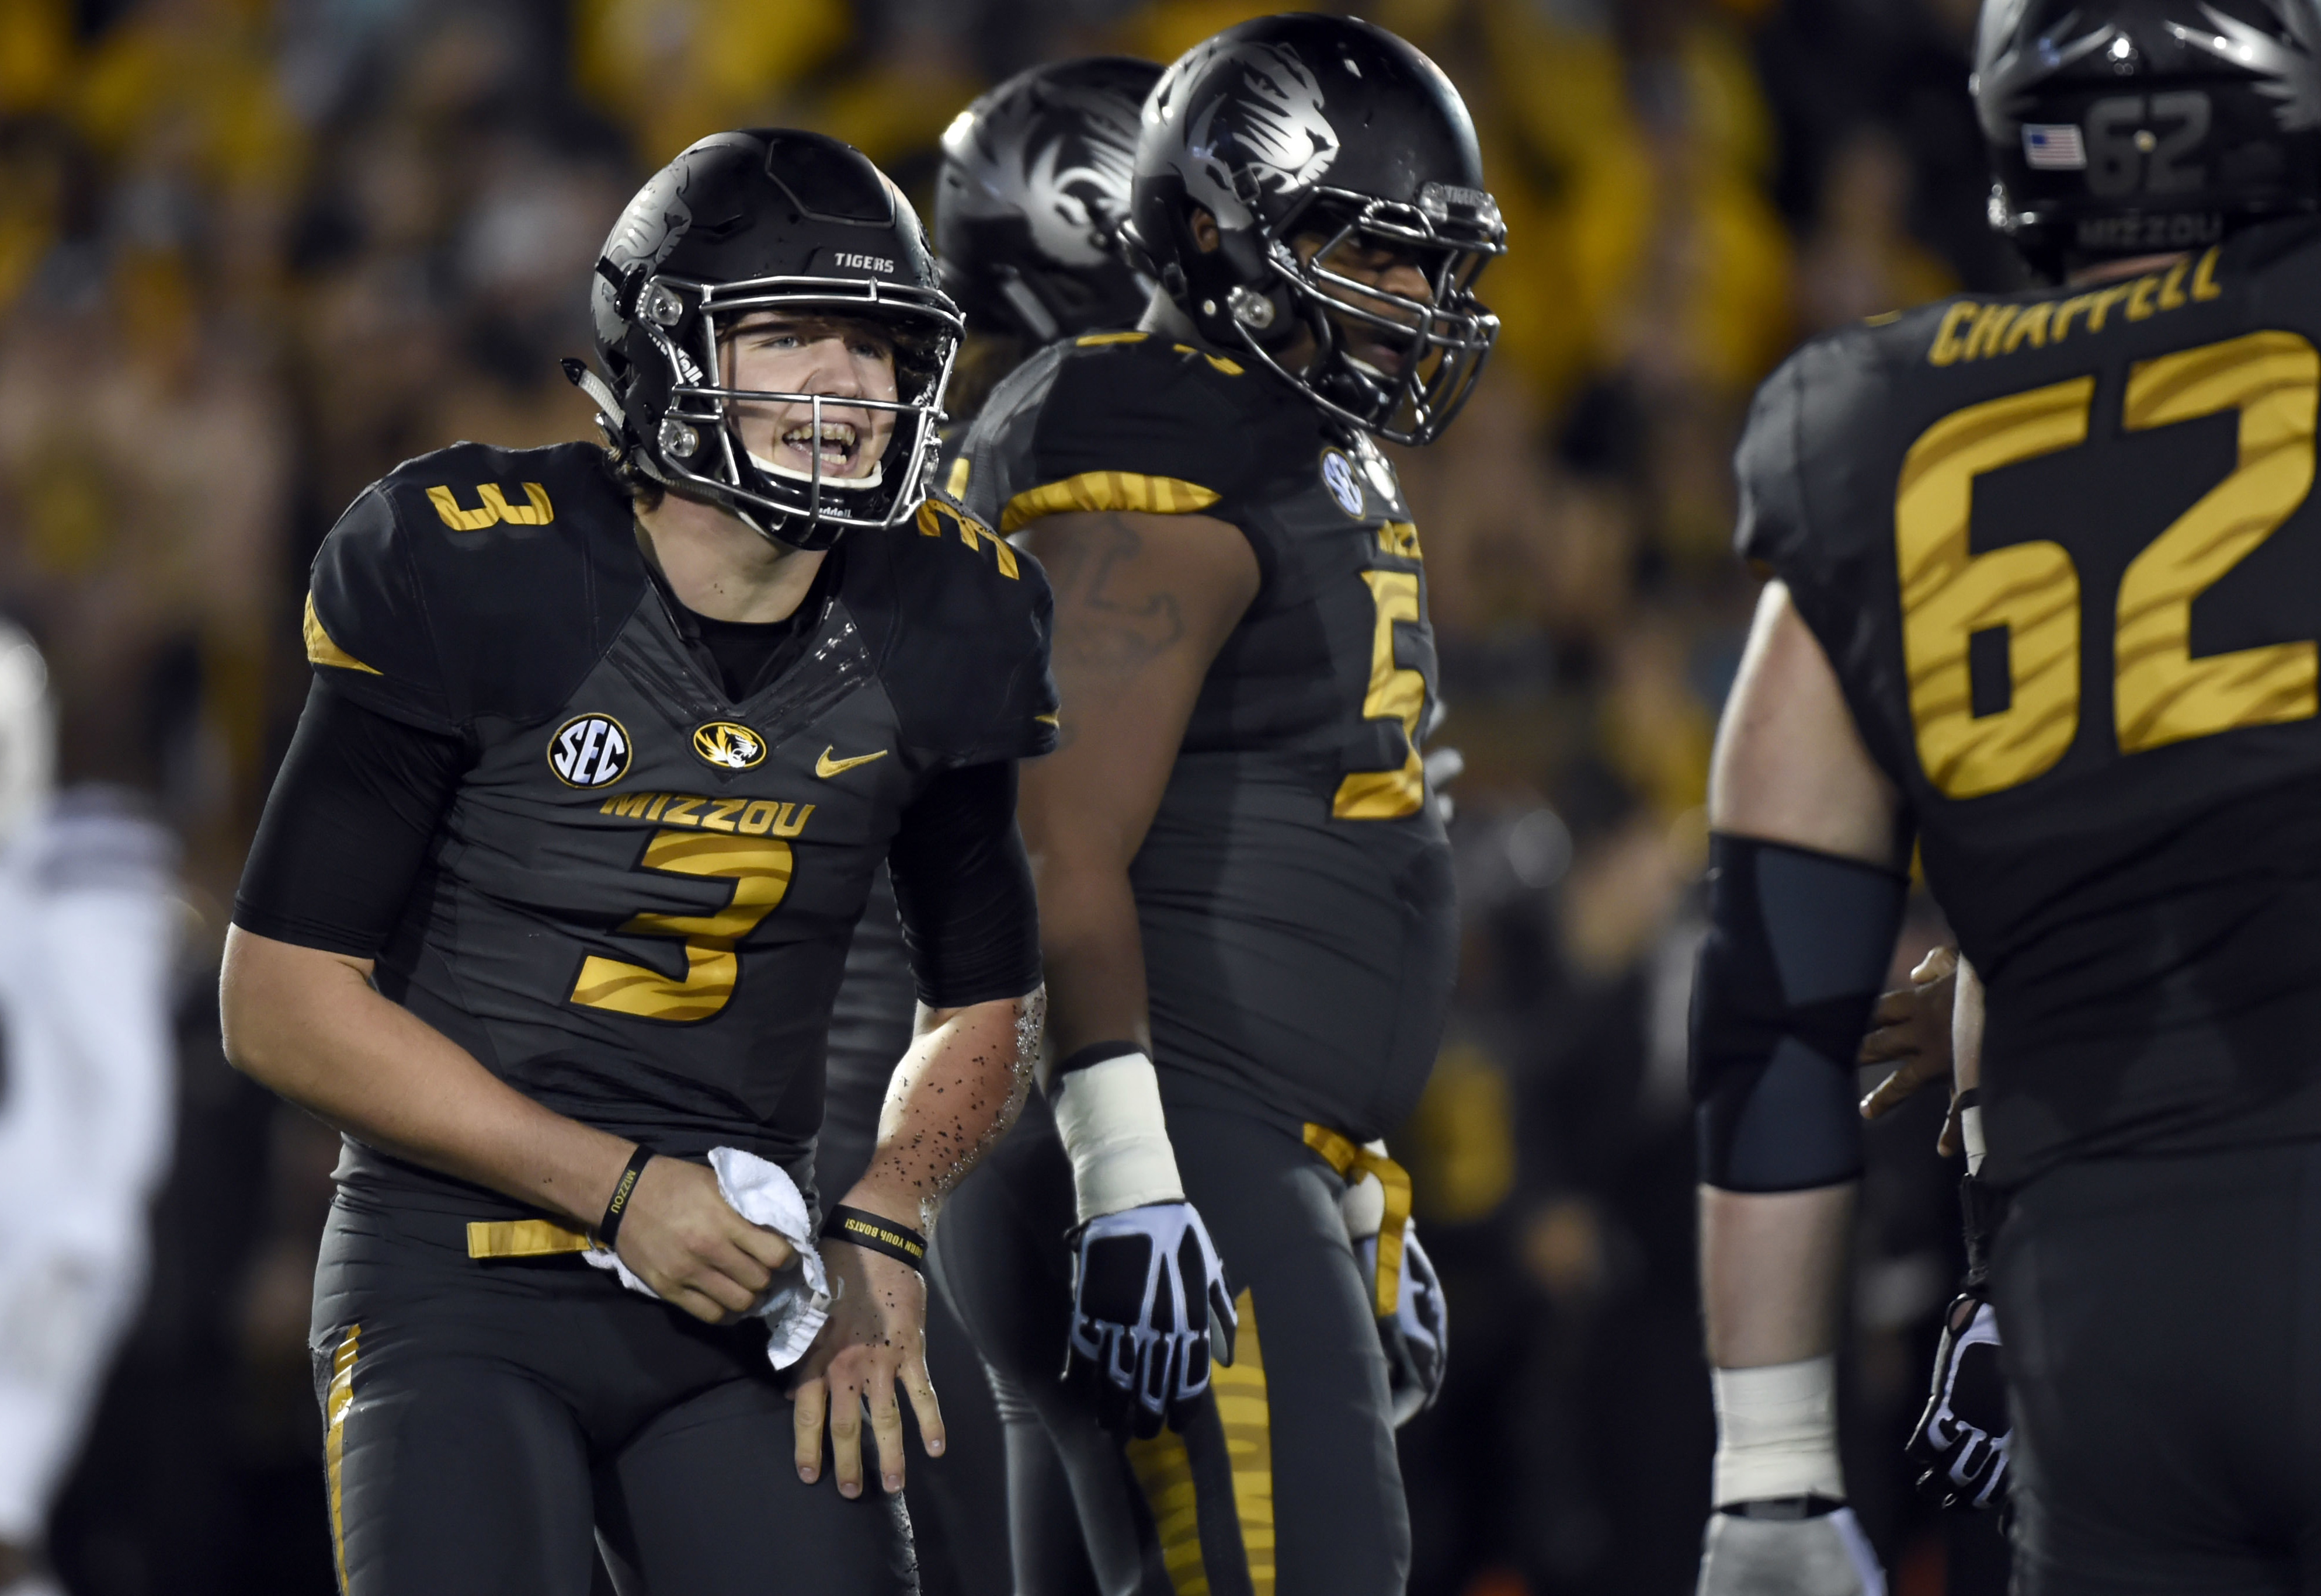 FILE - In this Nov. 5, 2015, file photo, Missouri quarterback Drew Lock left, and teammates get ready to run a play during an NCAA college football game against Mississippi State in Columbia, Mo. Though only a sophomore, Lock has more experience than the